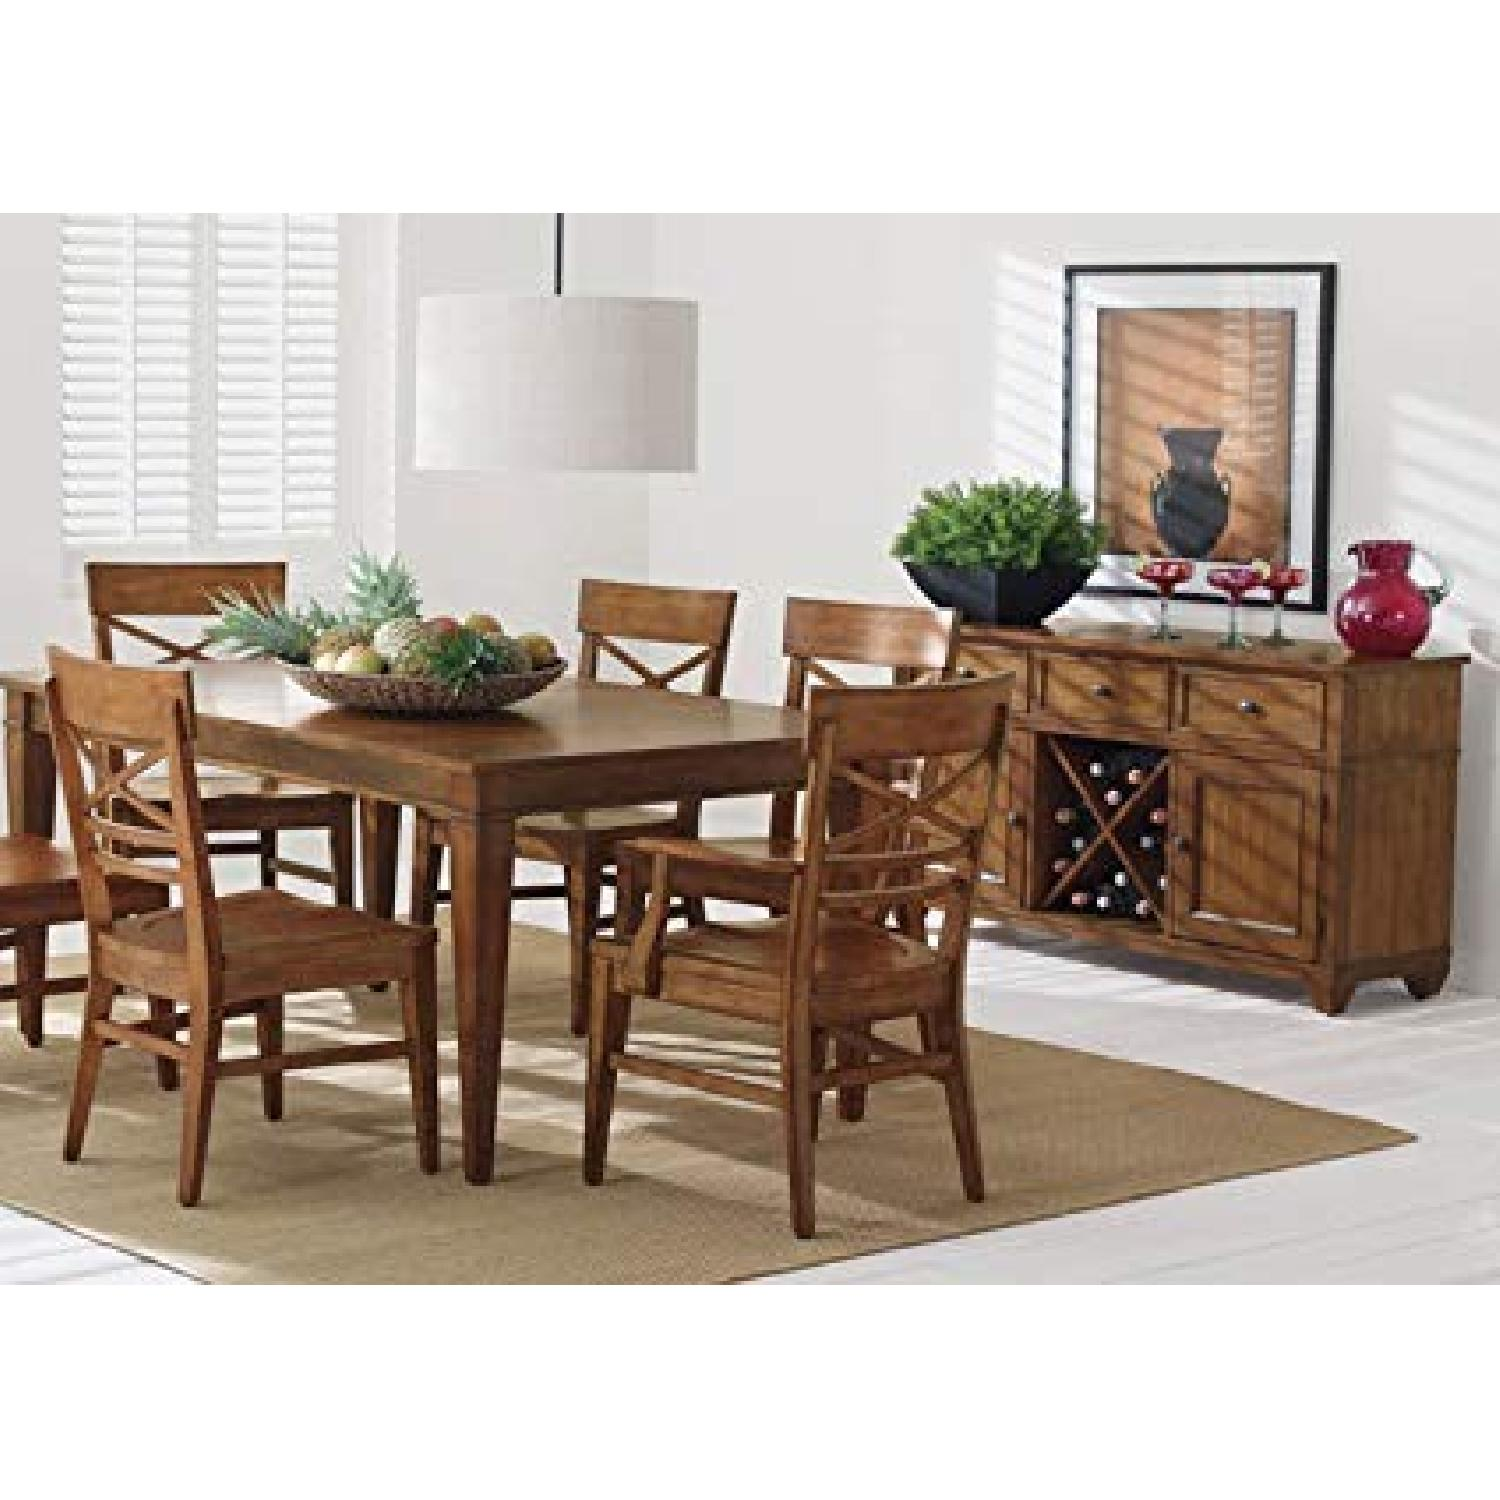 Ethan Allen Extension Dining Table w/ 6 Chairs - image-1